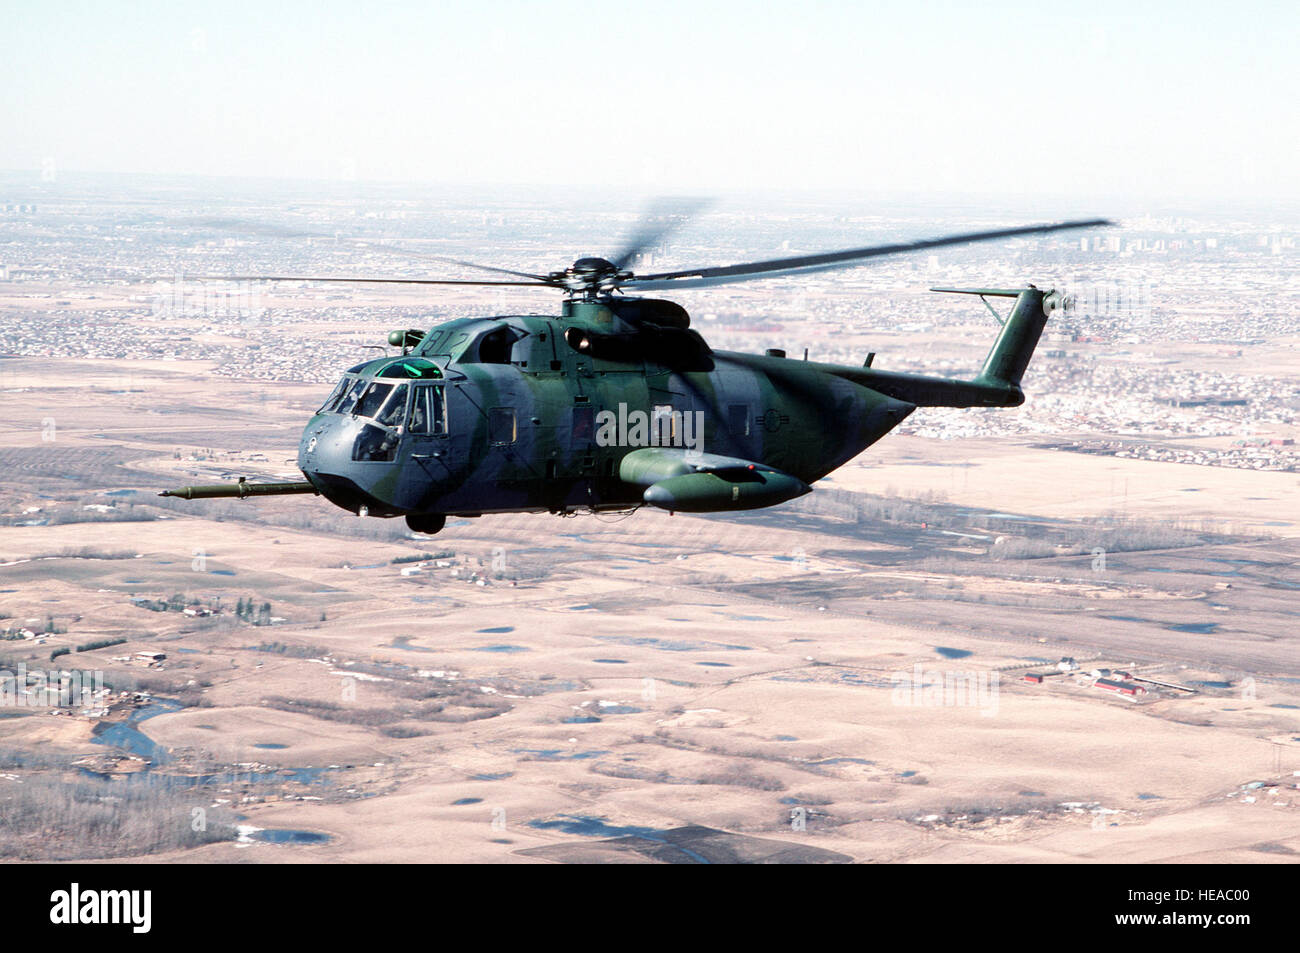 A 71st Air Rescue Squadron (71st ARS) HH-3E Jolly Green Giant helicopter flies over Canada en route to Aircraft - Stock Image